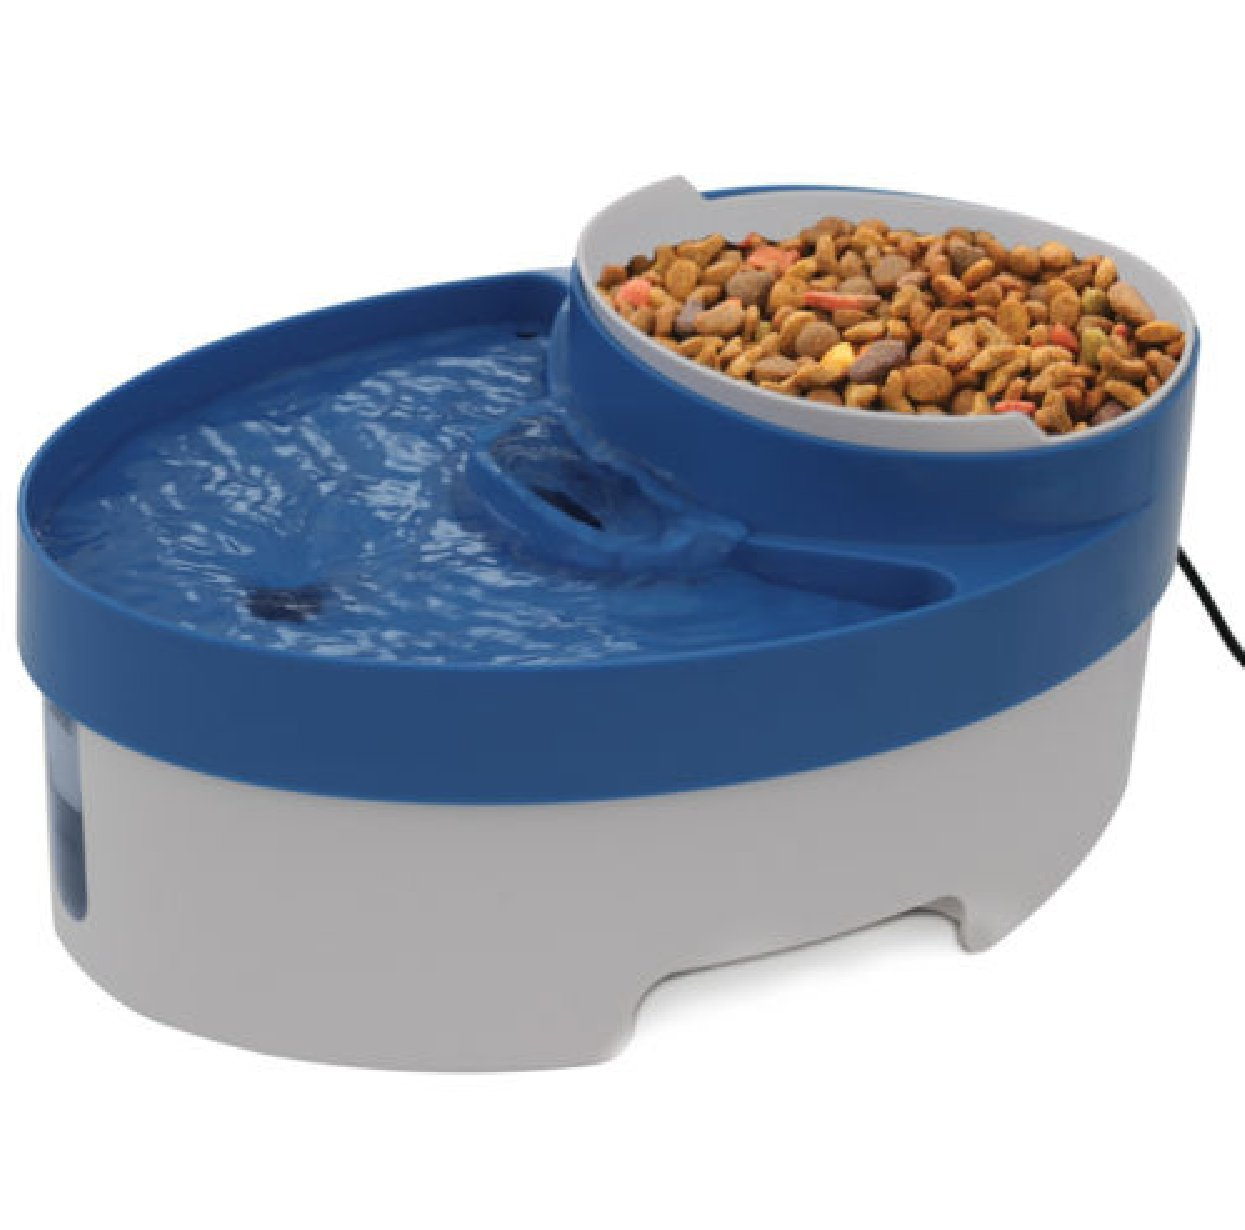 Uncategorized Dog Food And Water Bowl pet supplies water fountain food bowl 3 in 1 for cat dog automatic dish feeder dispenser waterer drink by phumon567 amaz